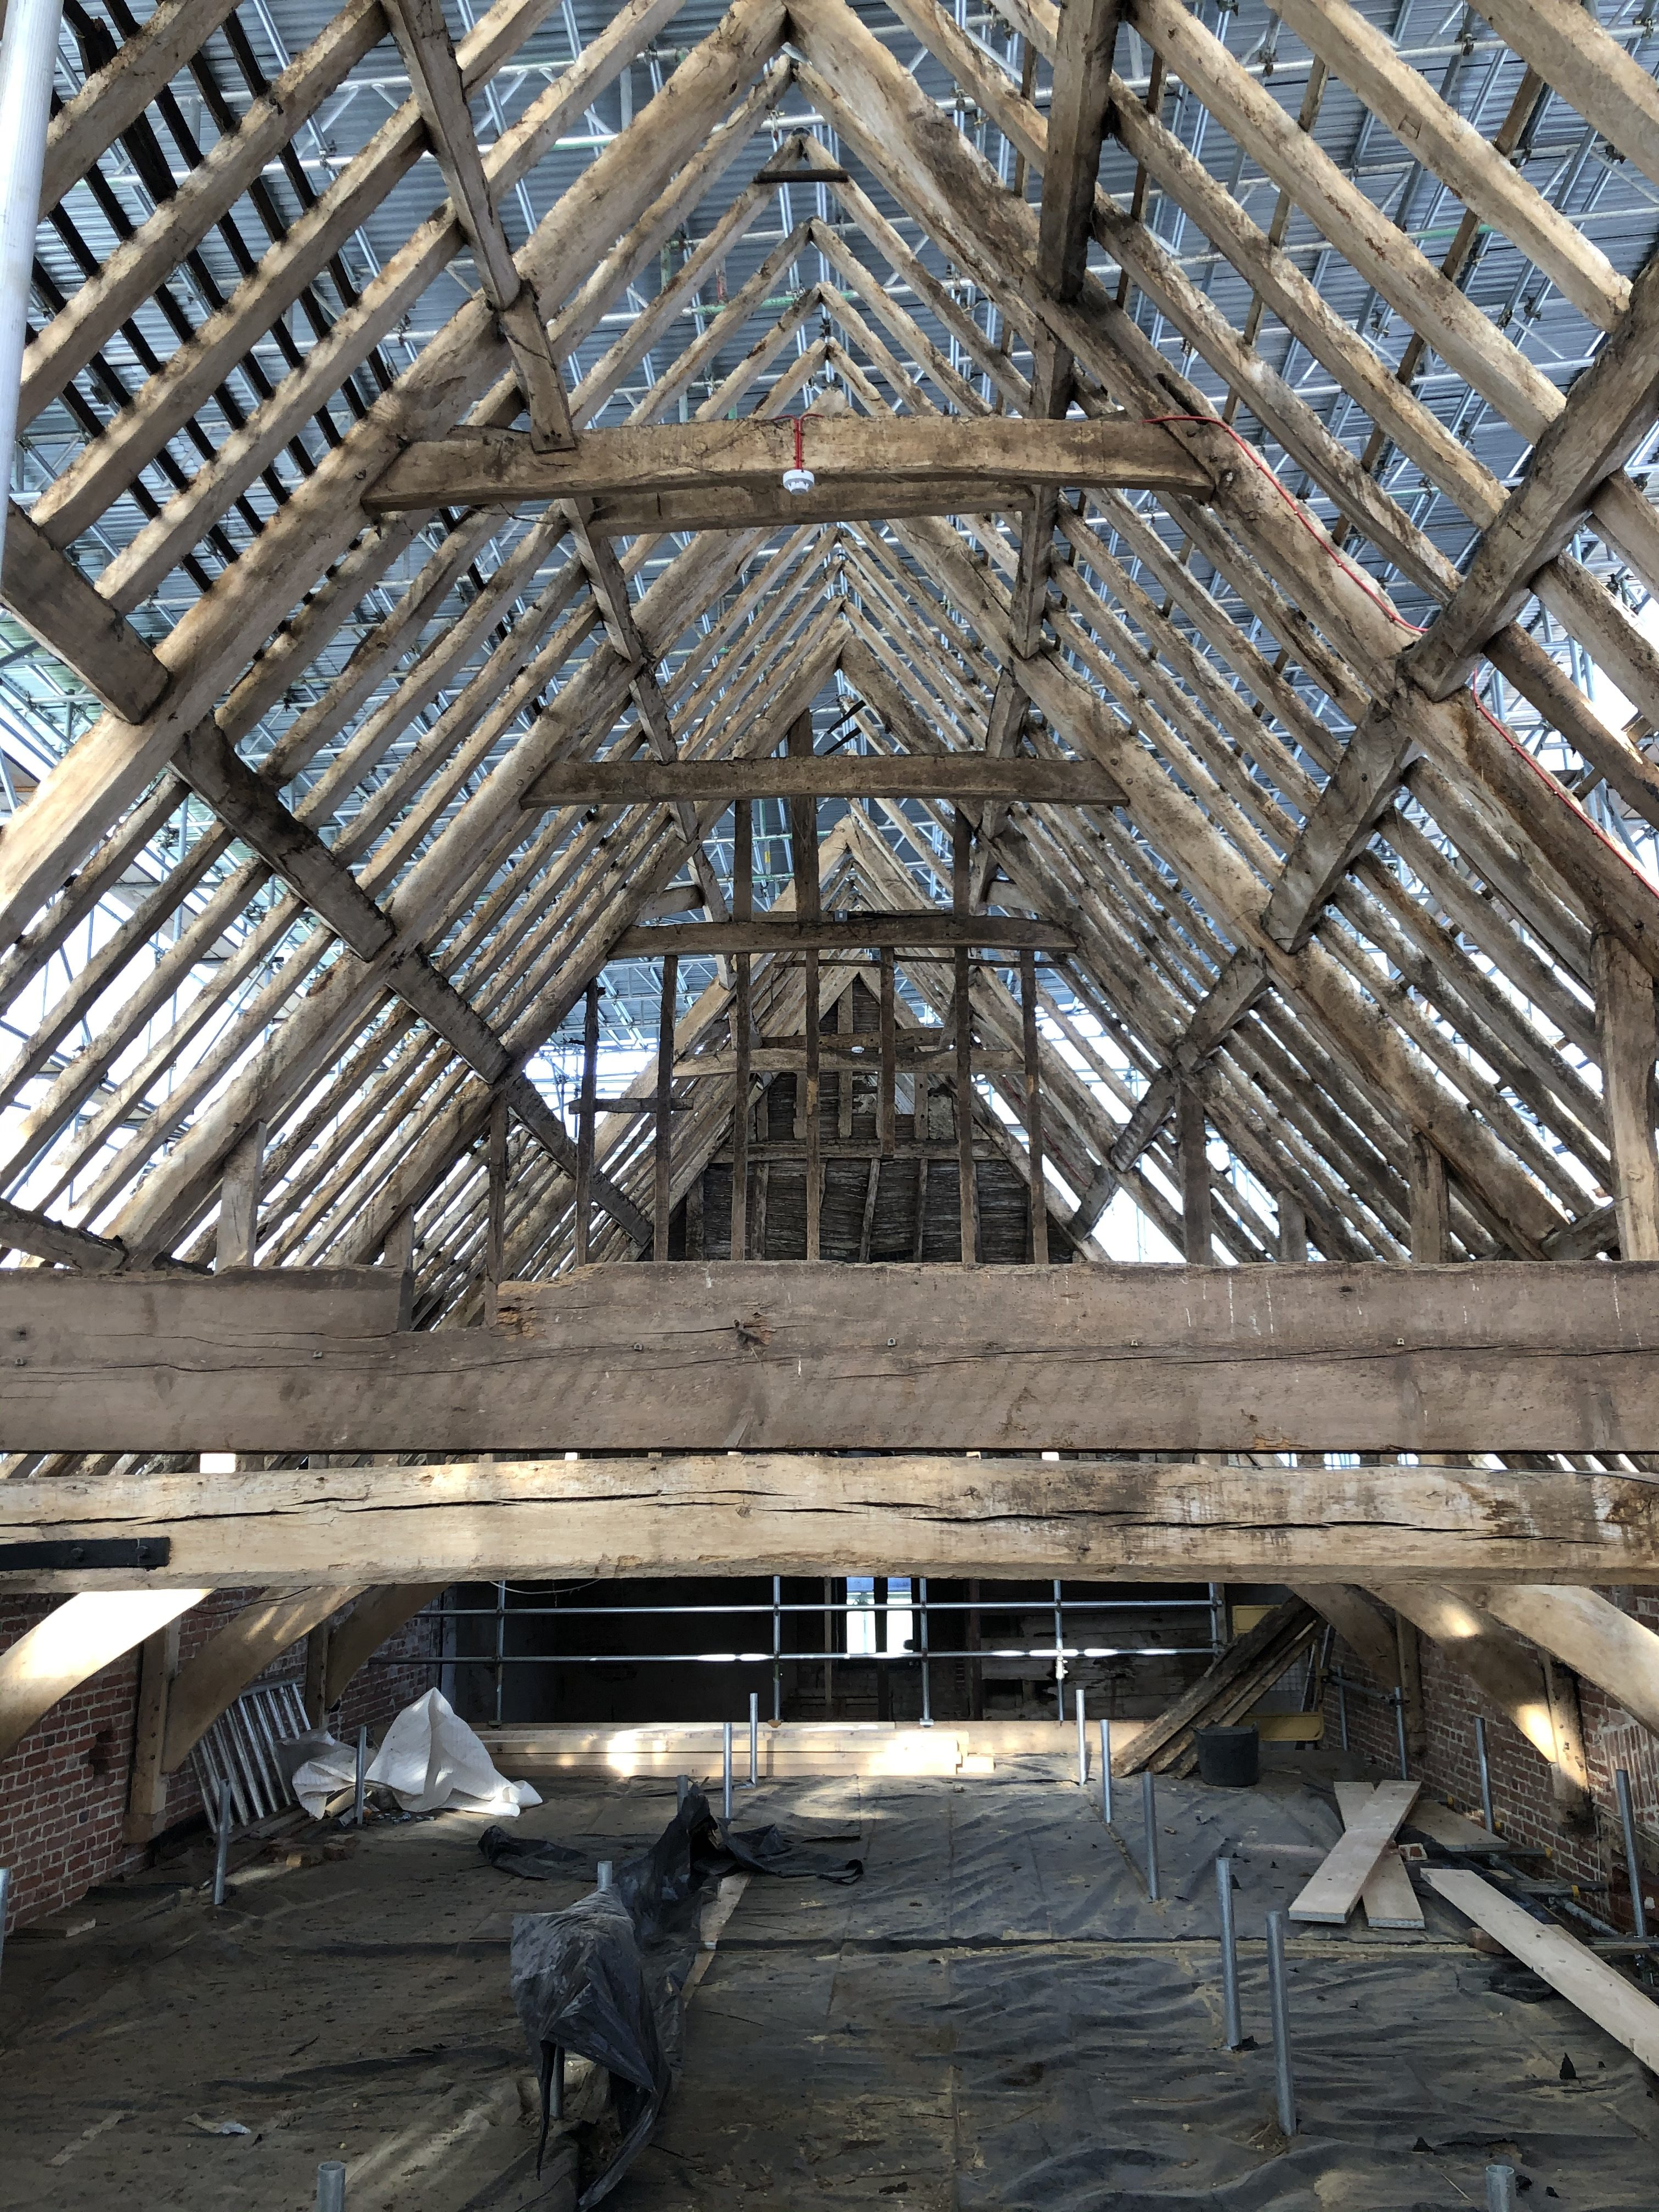 James Powell's image of a wedding ceremony in the middle of the great barn